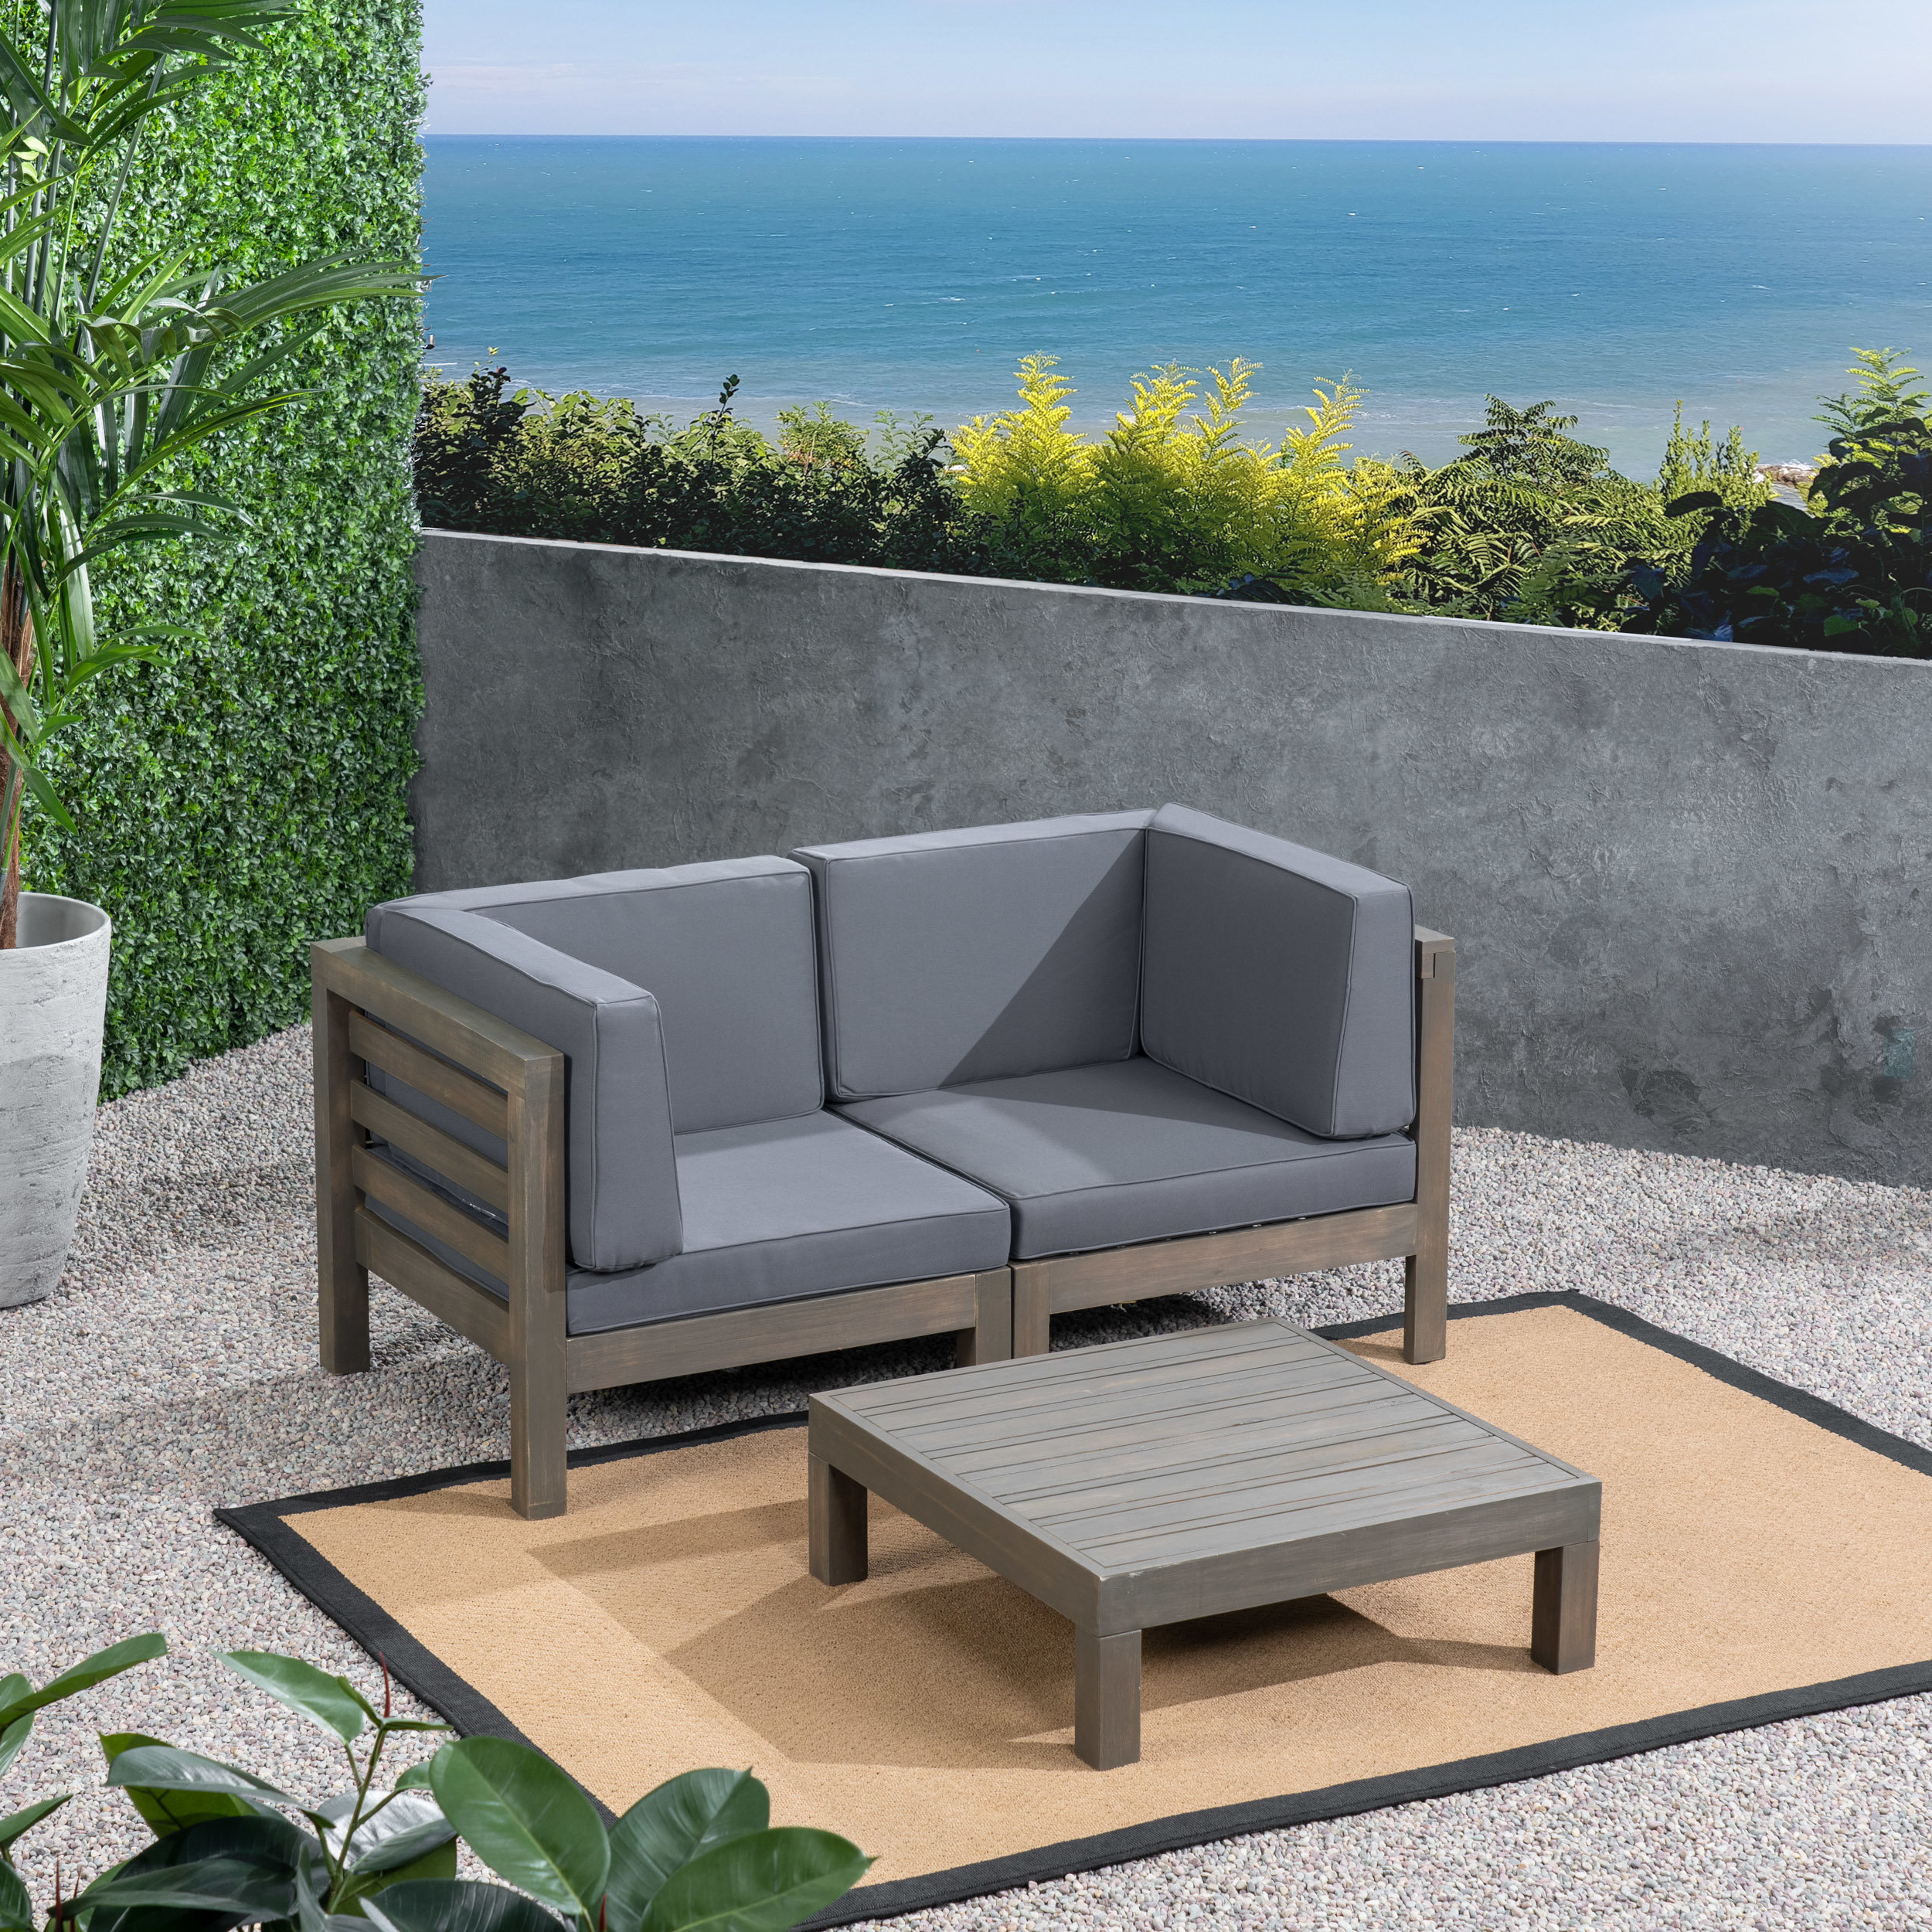 Well Liked Seaham 3 Piece Teak Sofa Seating Group With Cushions In Seaham Patio Sectionals With Cushions (View 19 of 20)